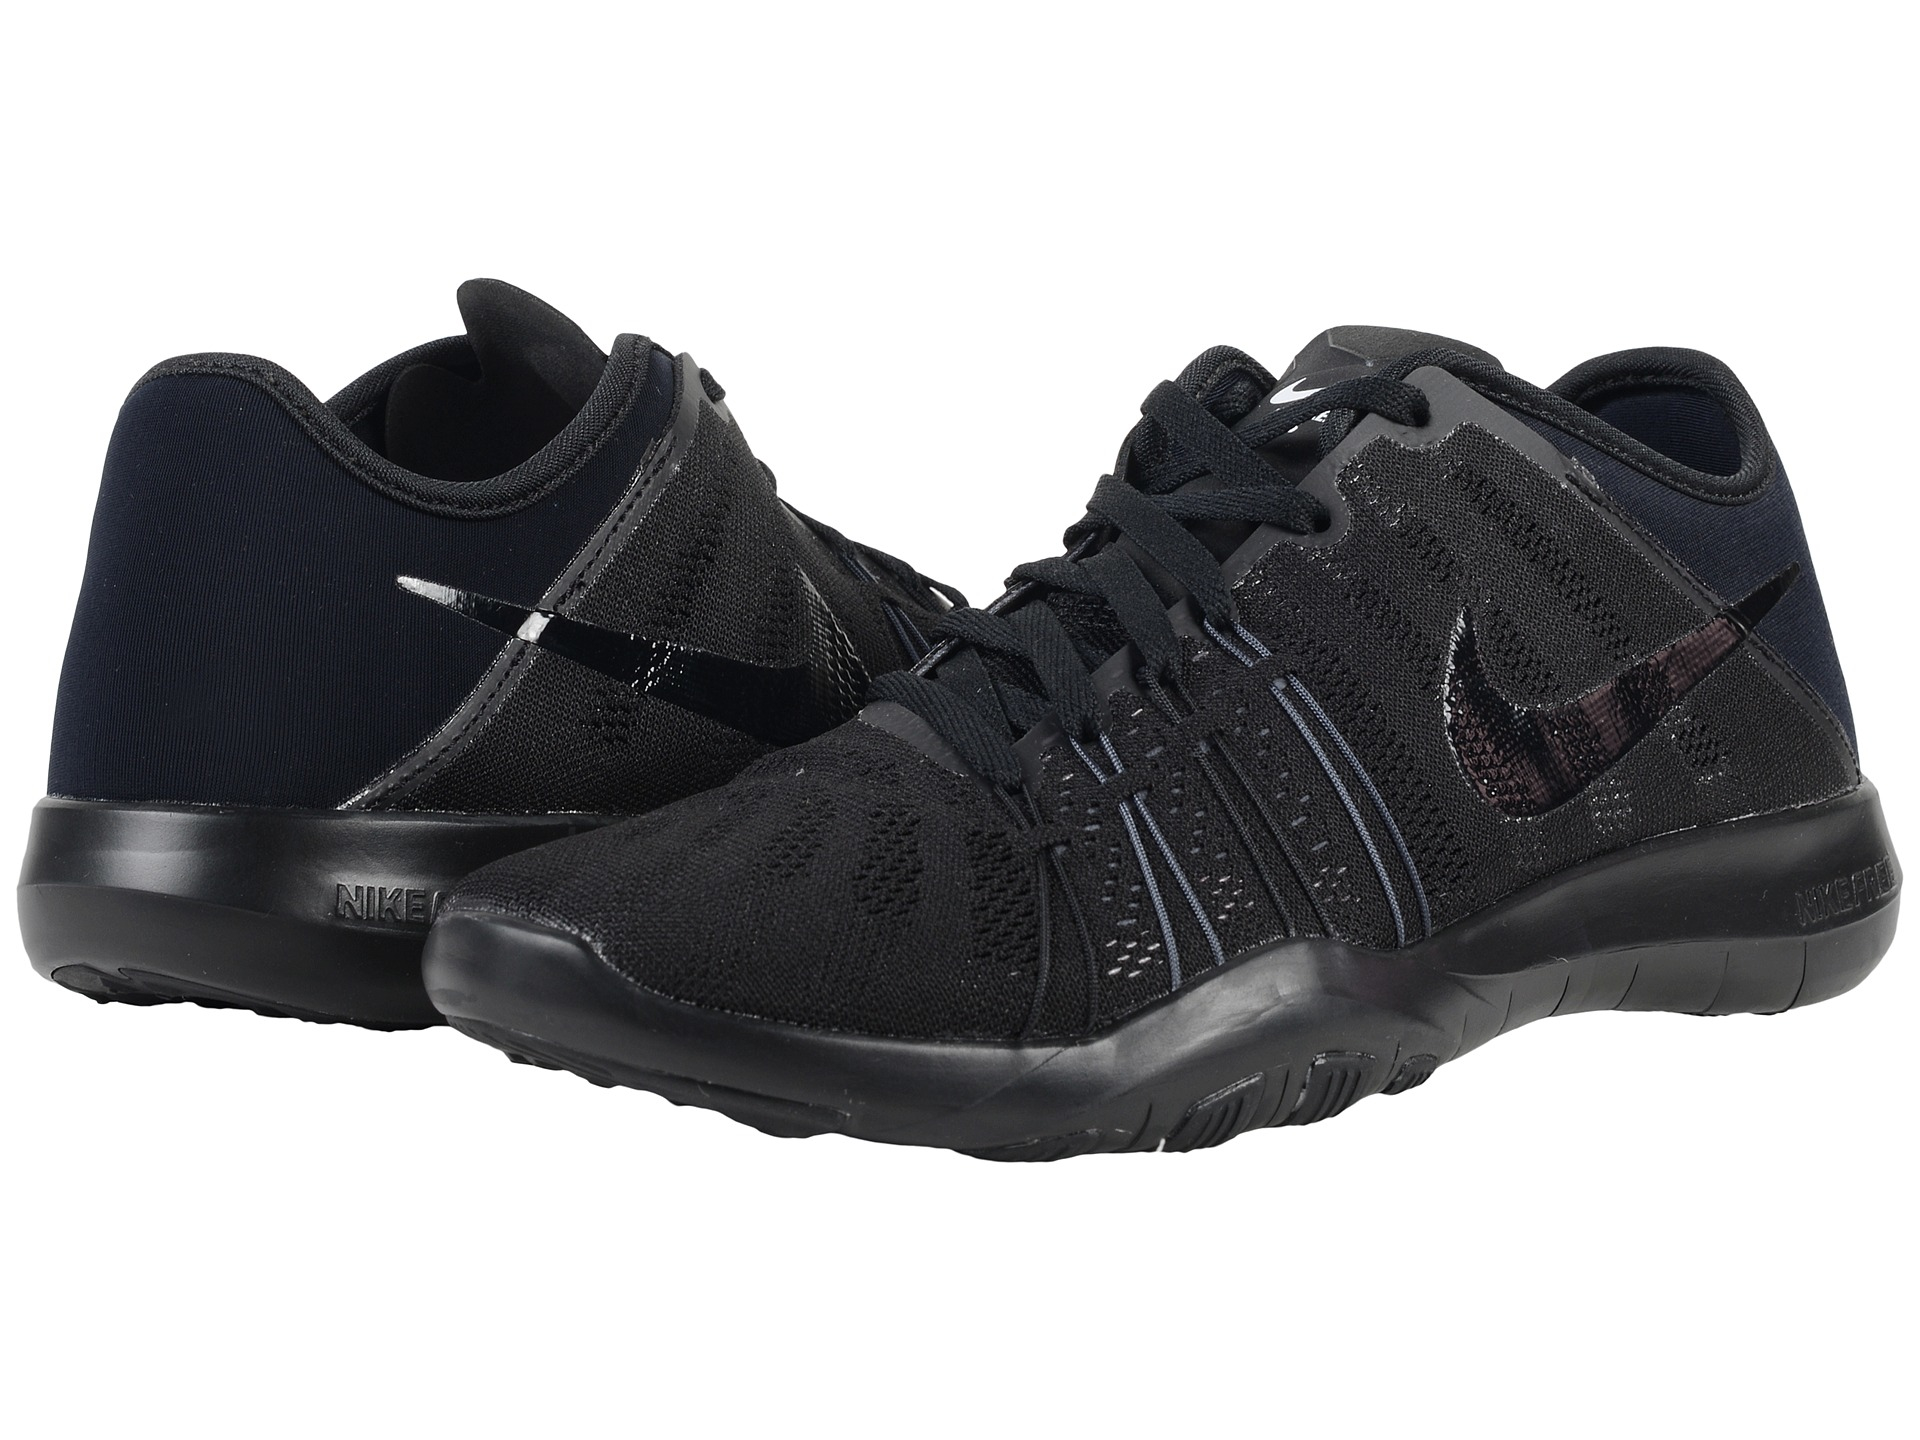 Nike Free Tr 6 In Black For Men Save 36 Lyst